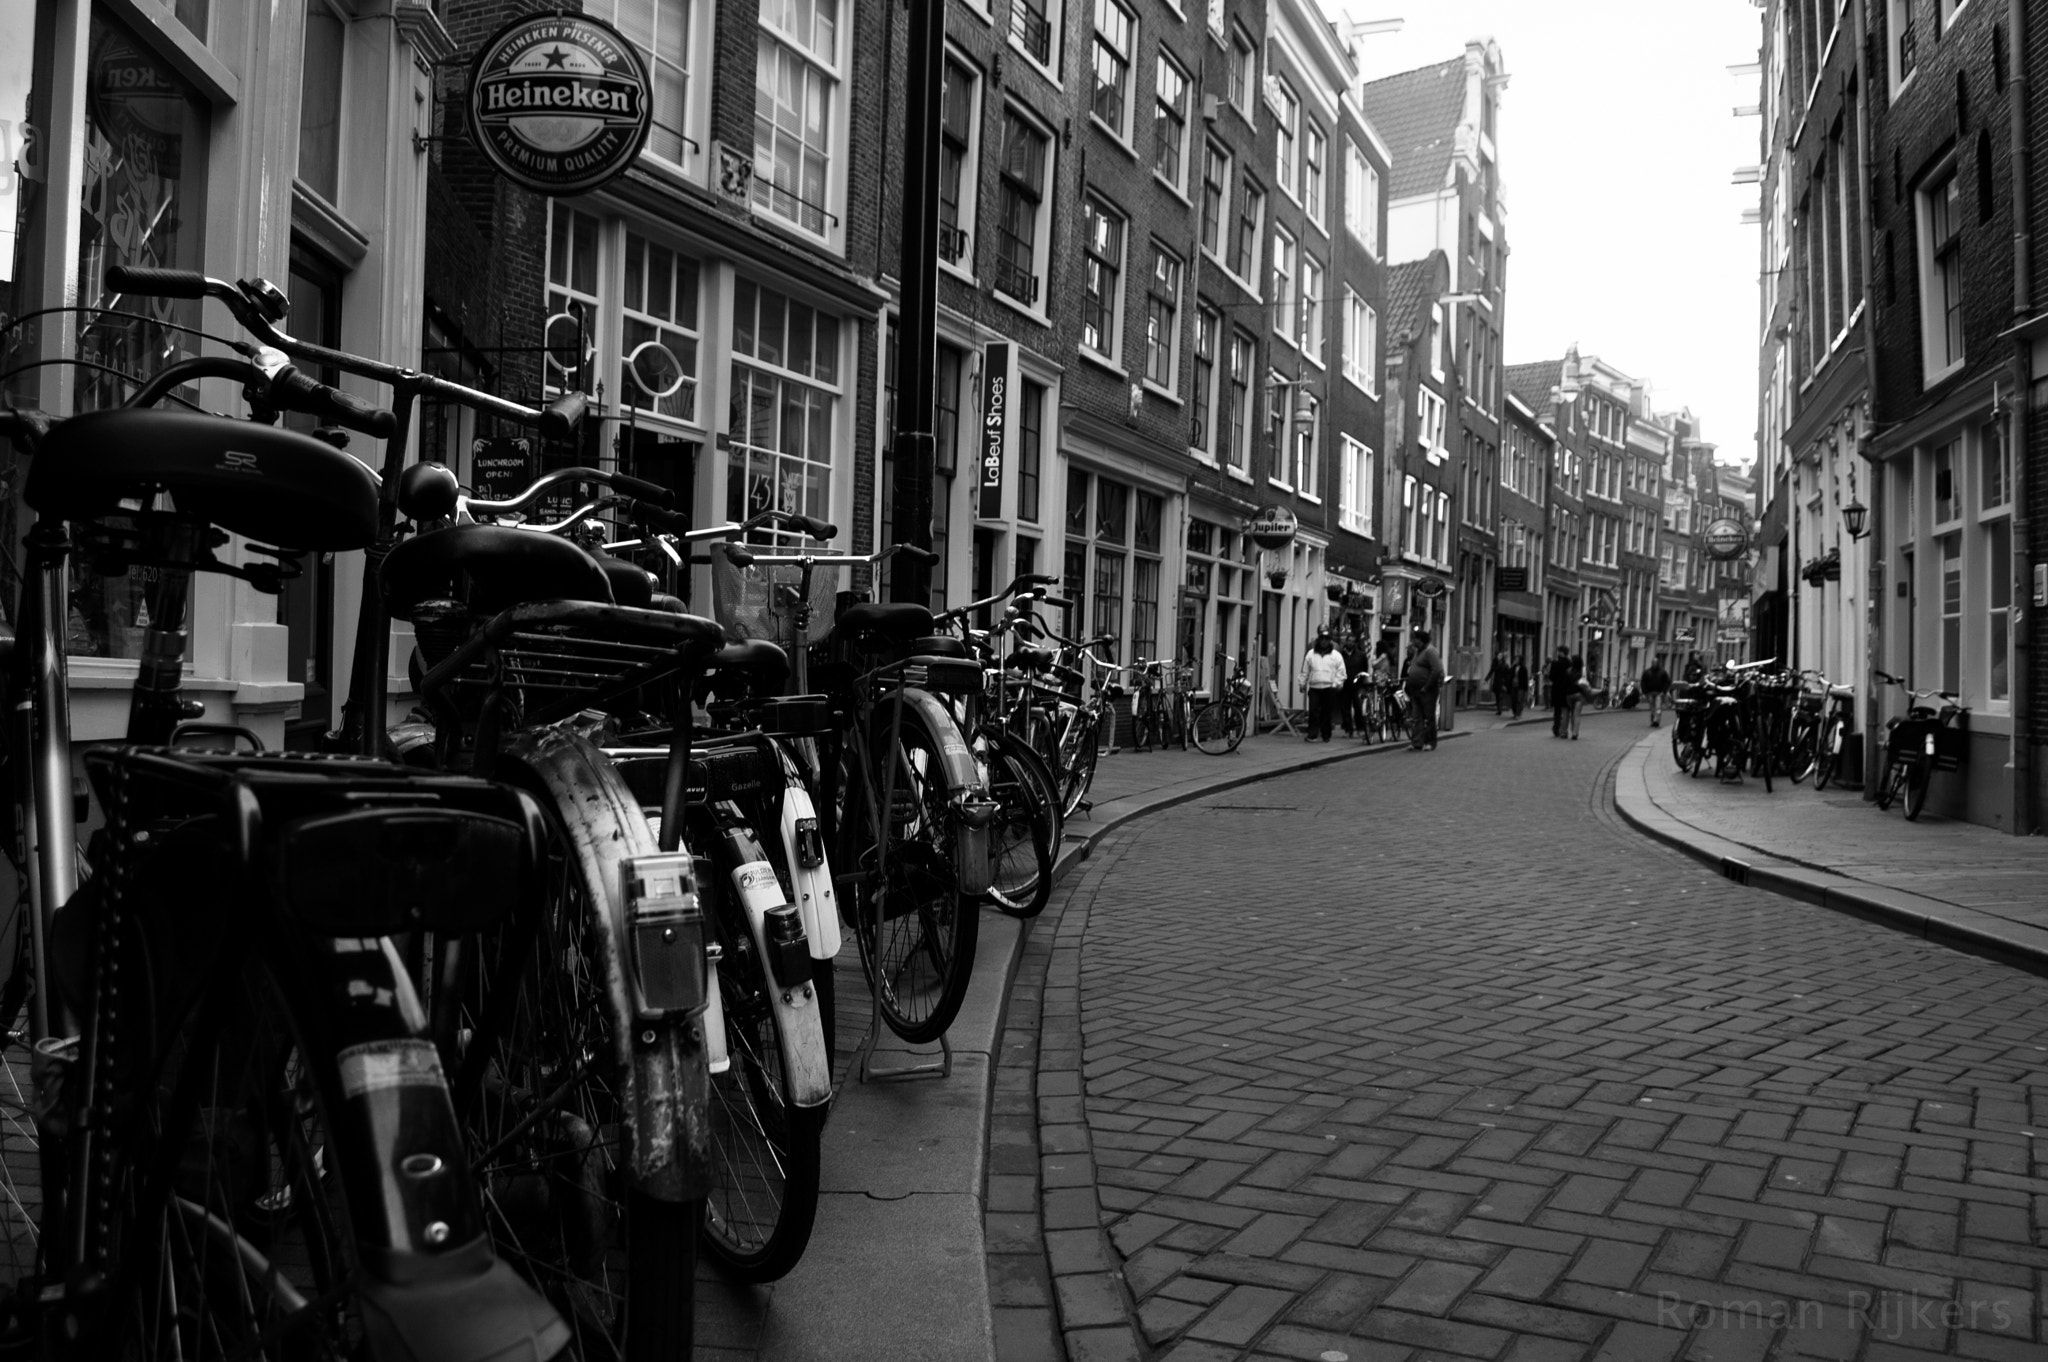 Photograph Amsterdam in Black and white by Roman Rijkers on 500px